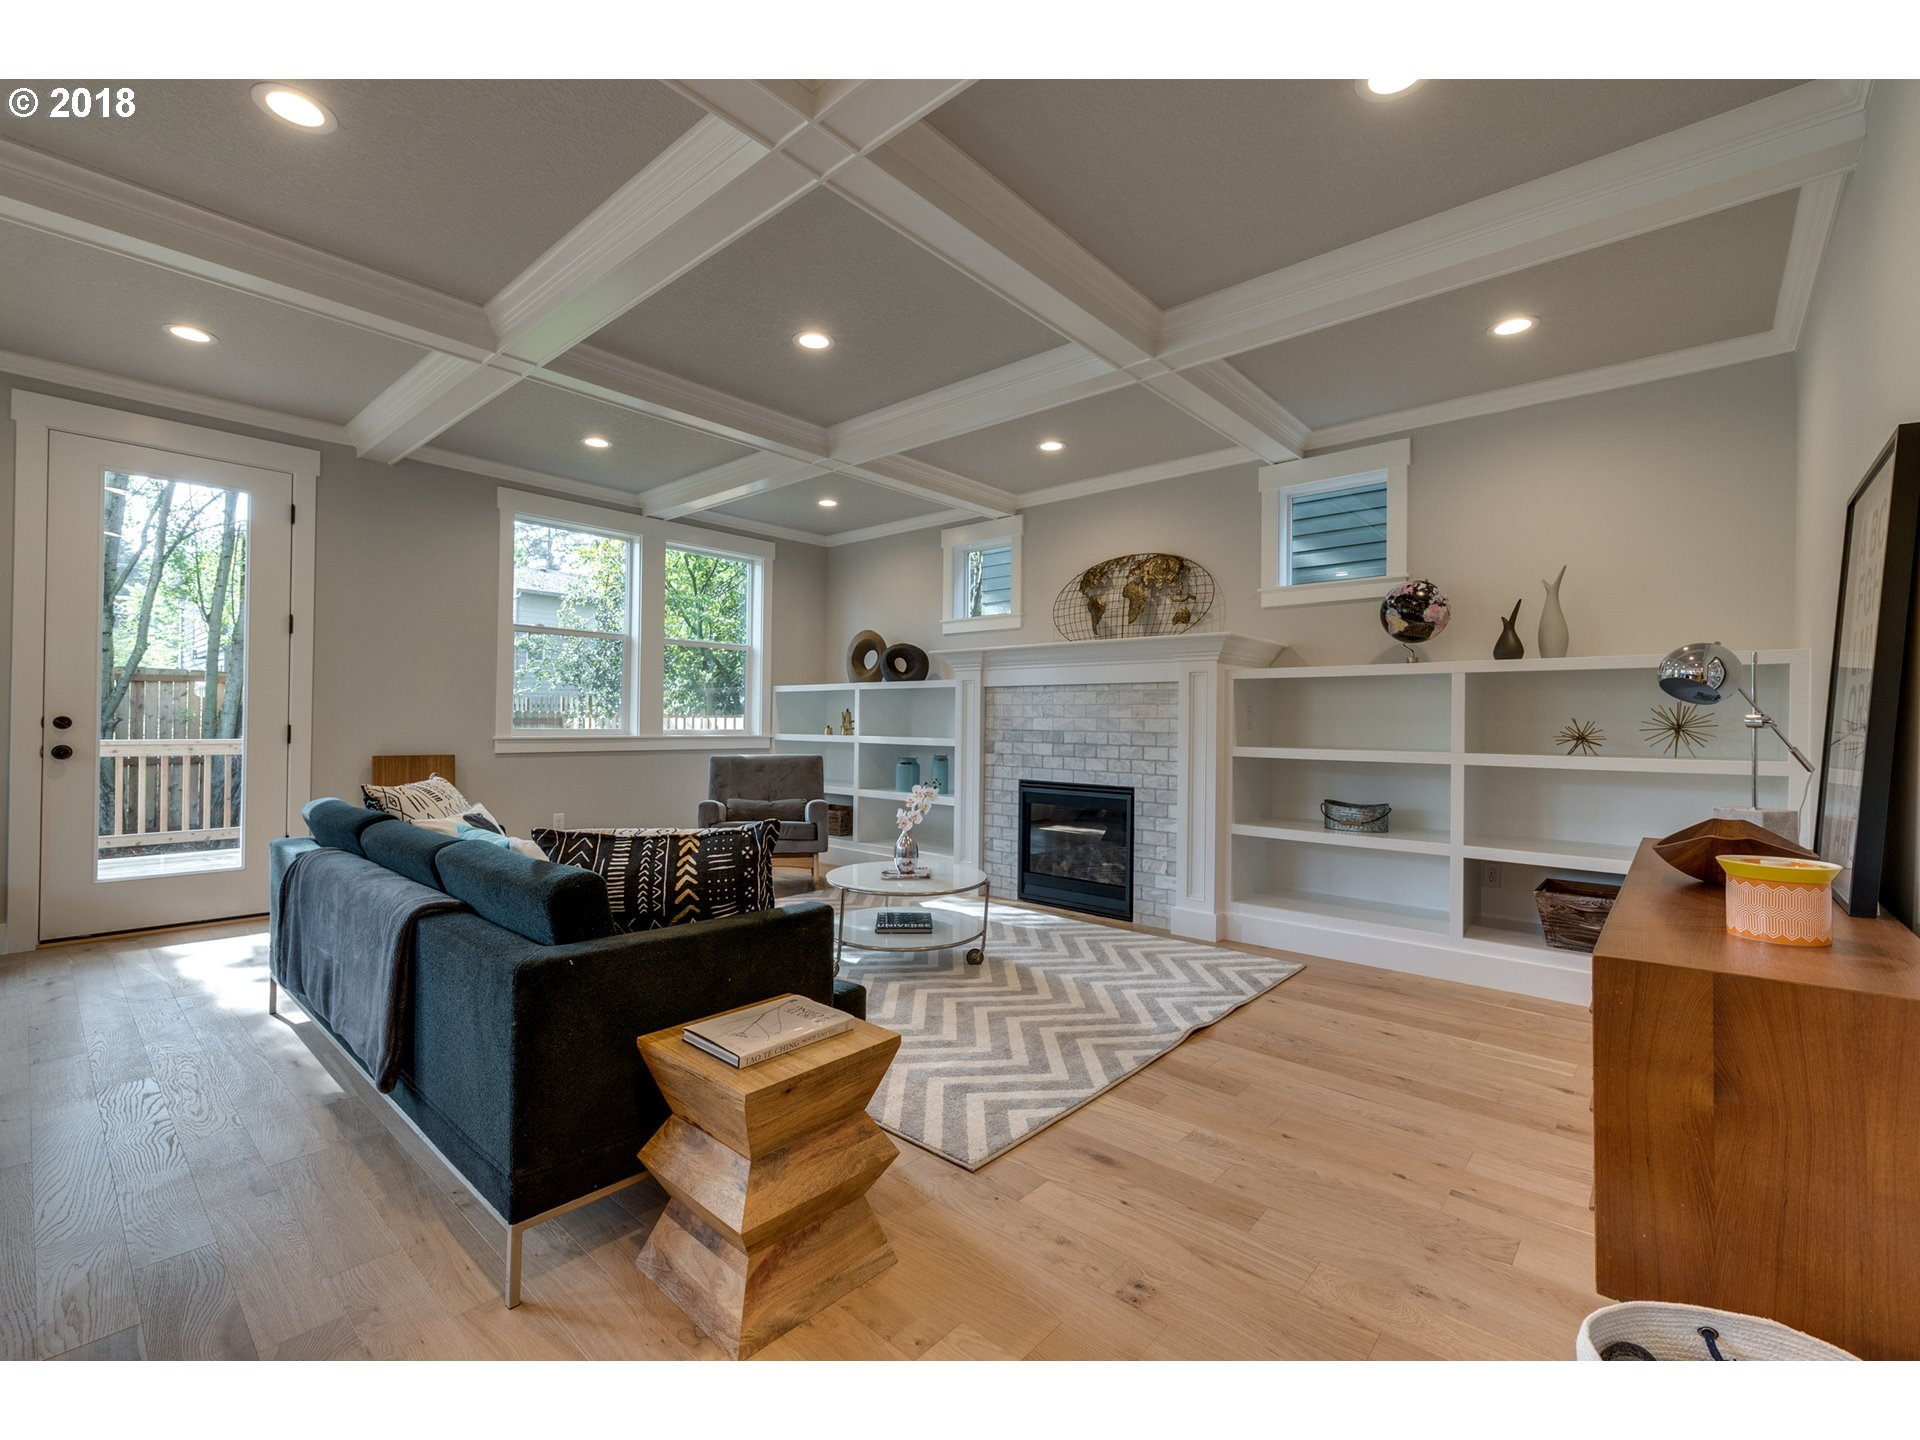 2264 sq. ft 4 bedrooms 2 bathrooms  House ,Portland, OR